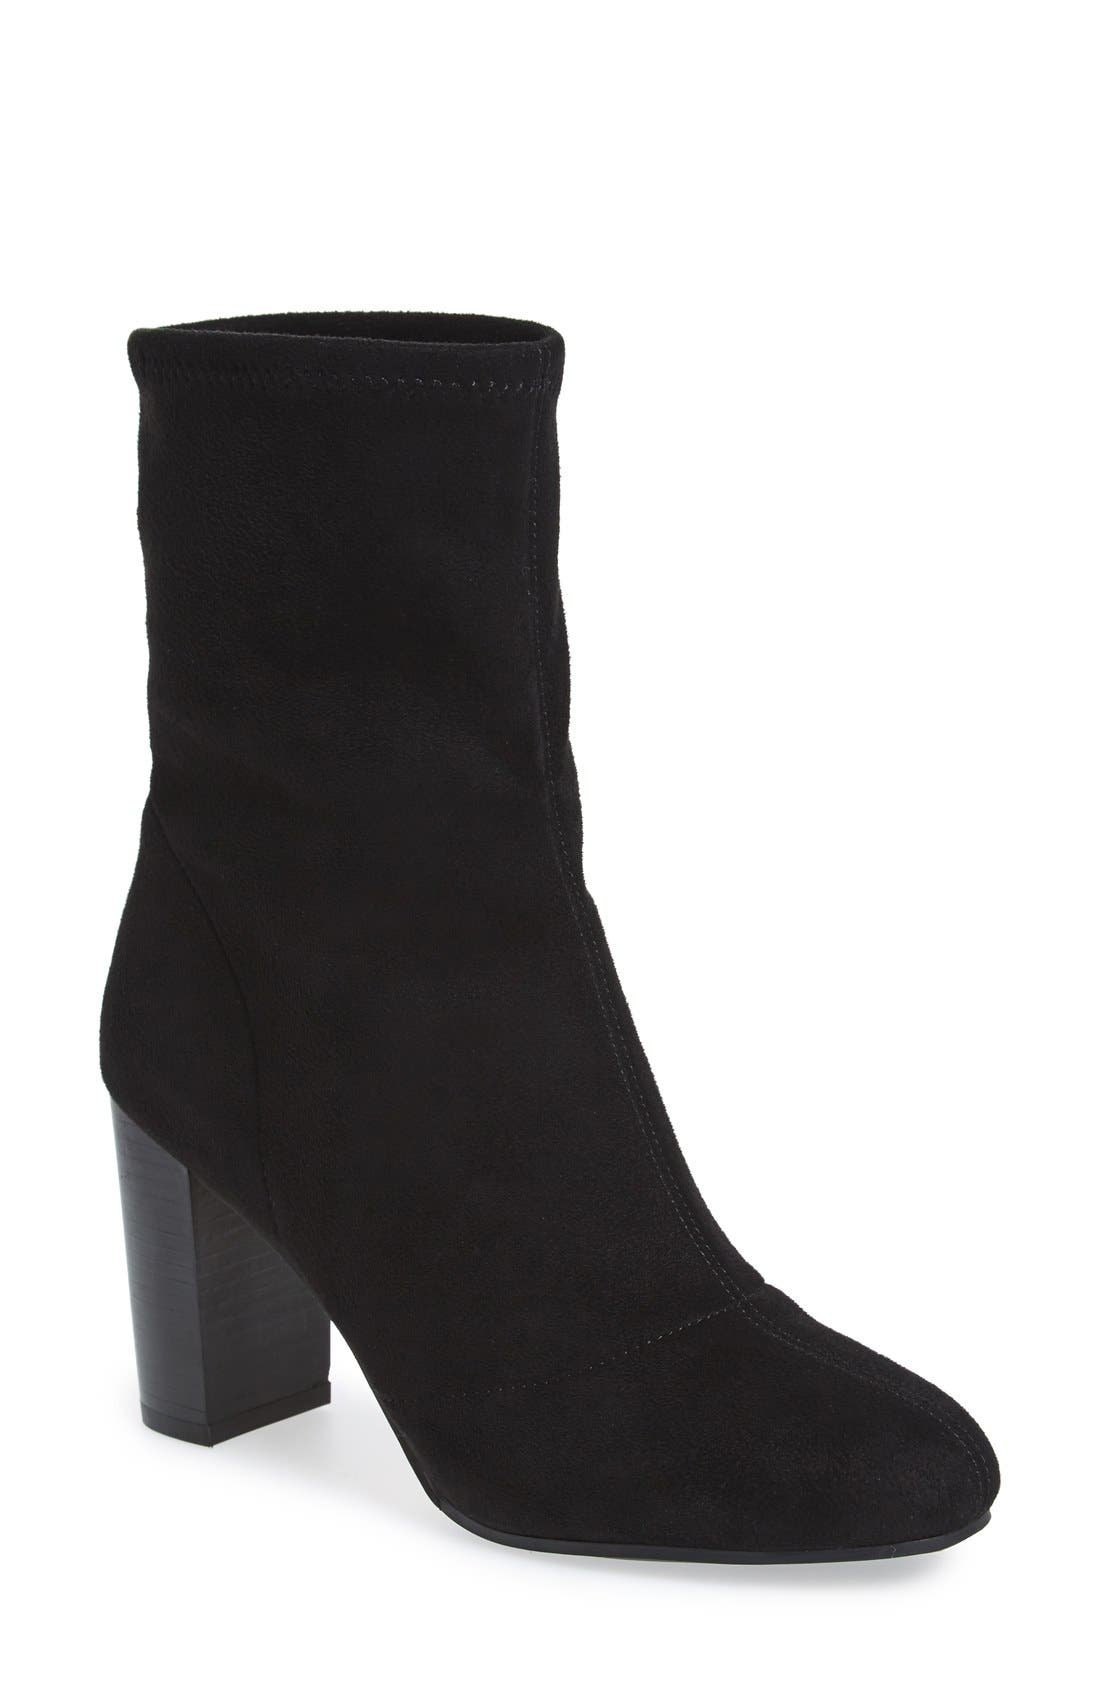 Alternate Image 1 Selected - Vince Camuto 'Sendra' Bootie (Women)